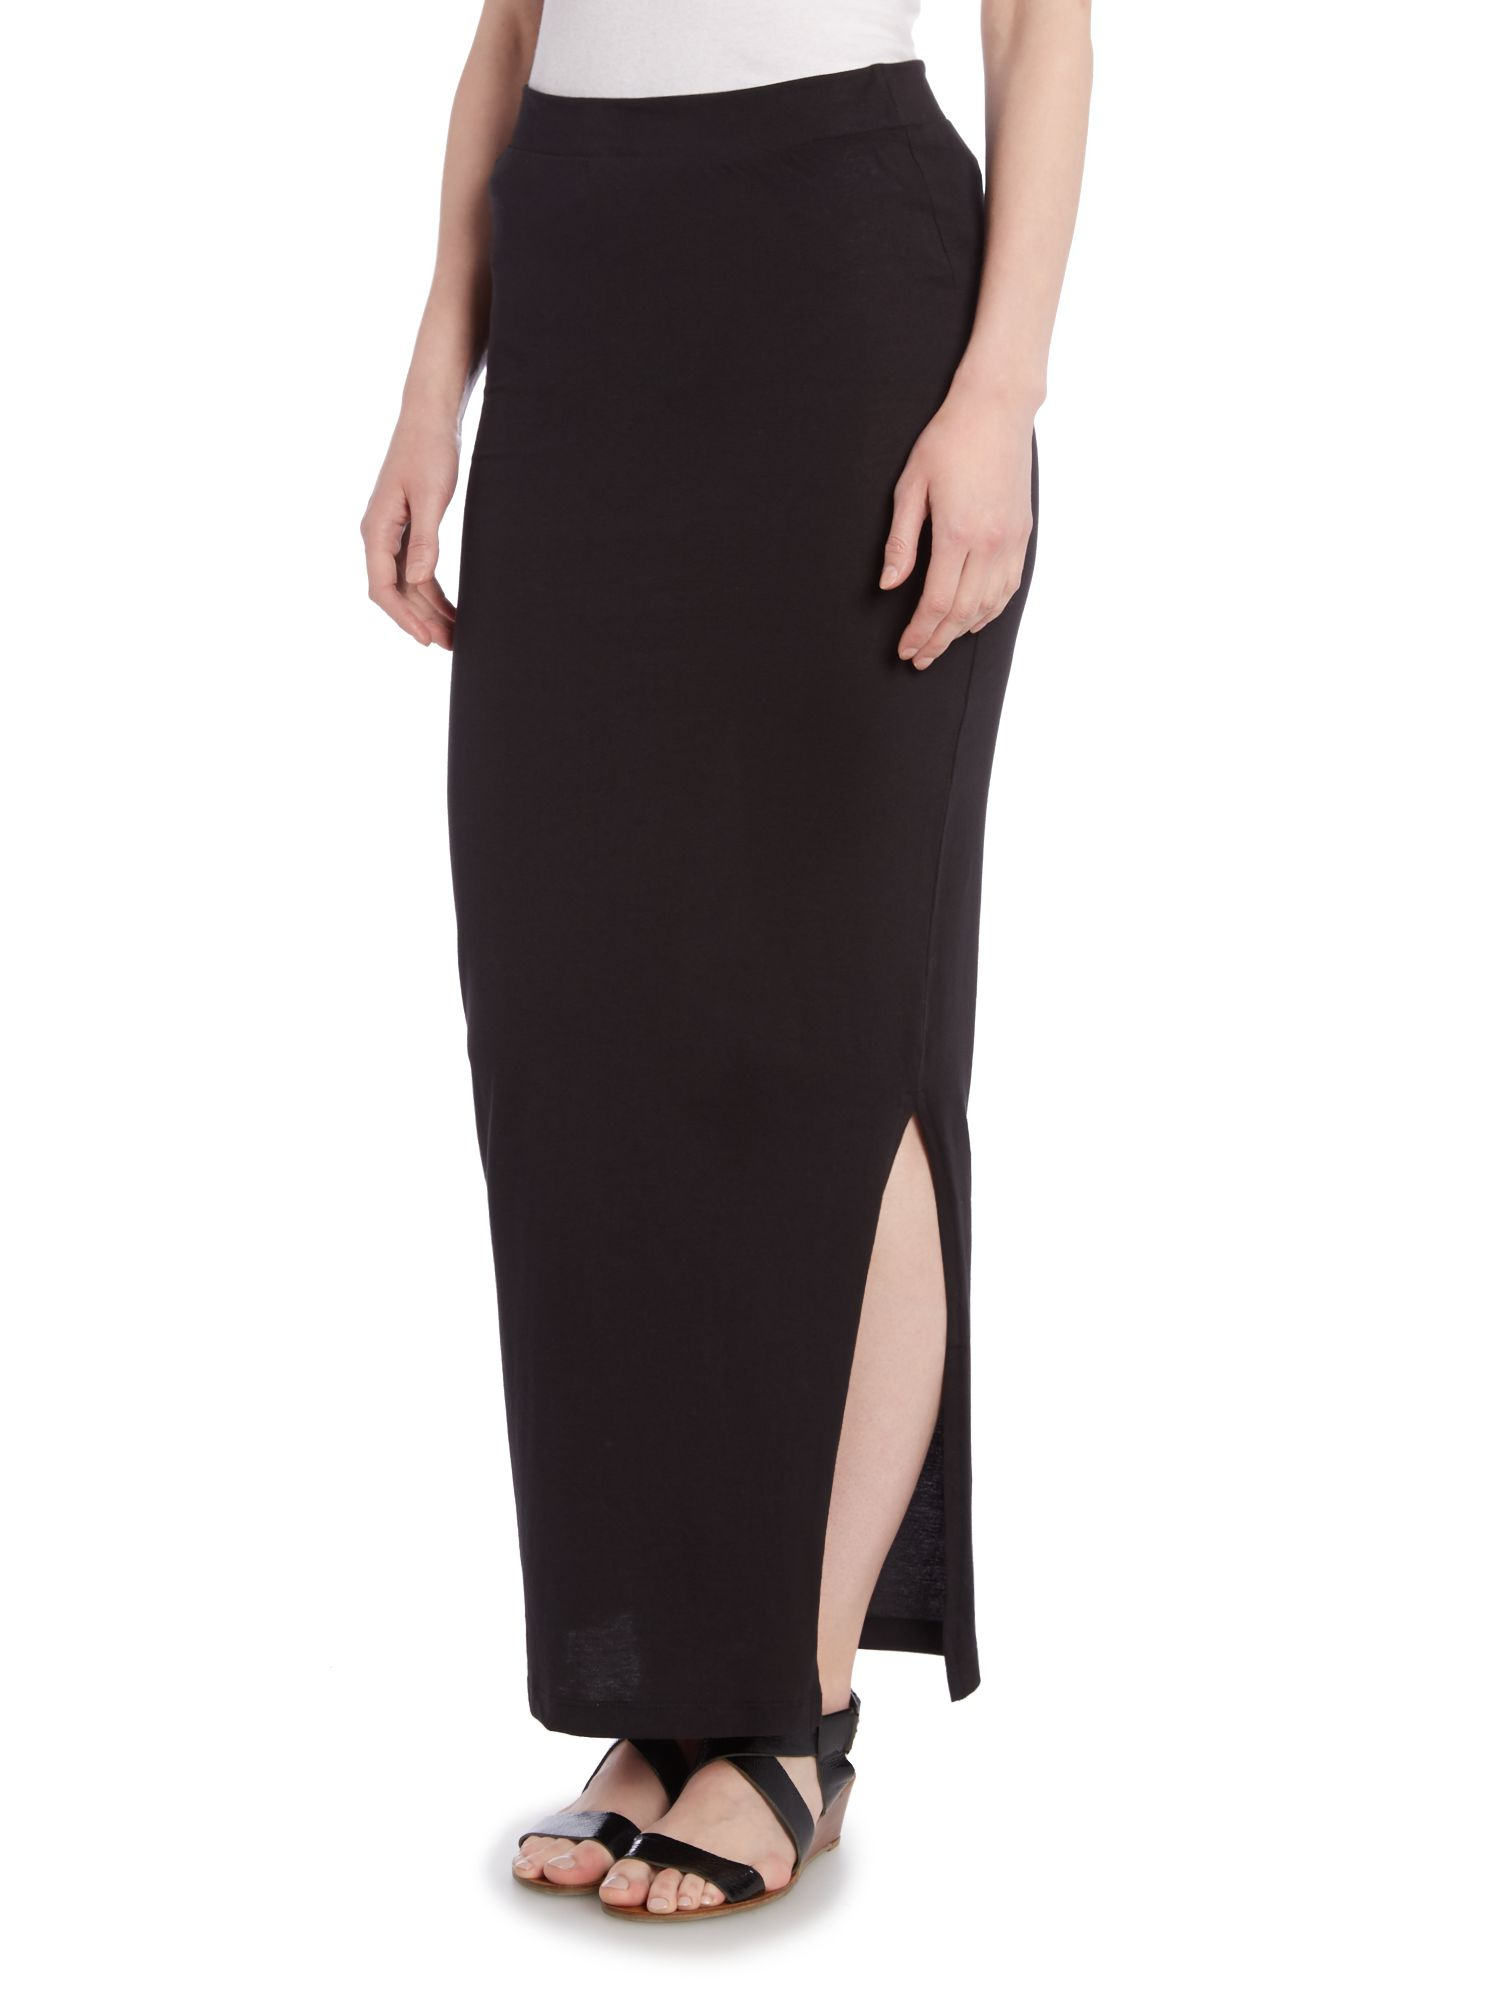 Vero moda Maxi Tube Skirt in Black | Lyst